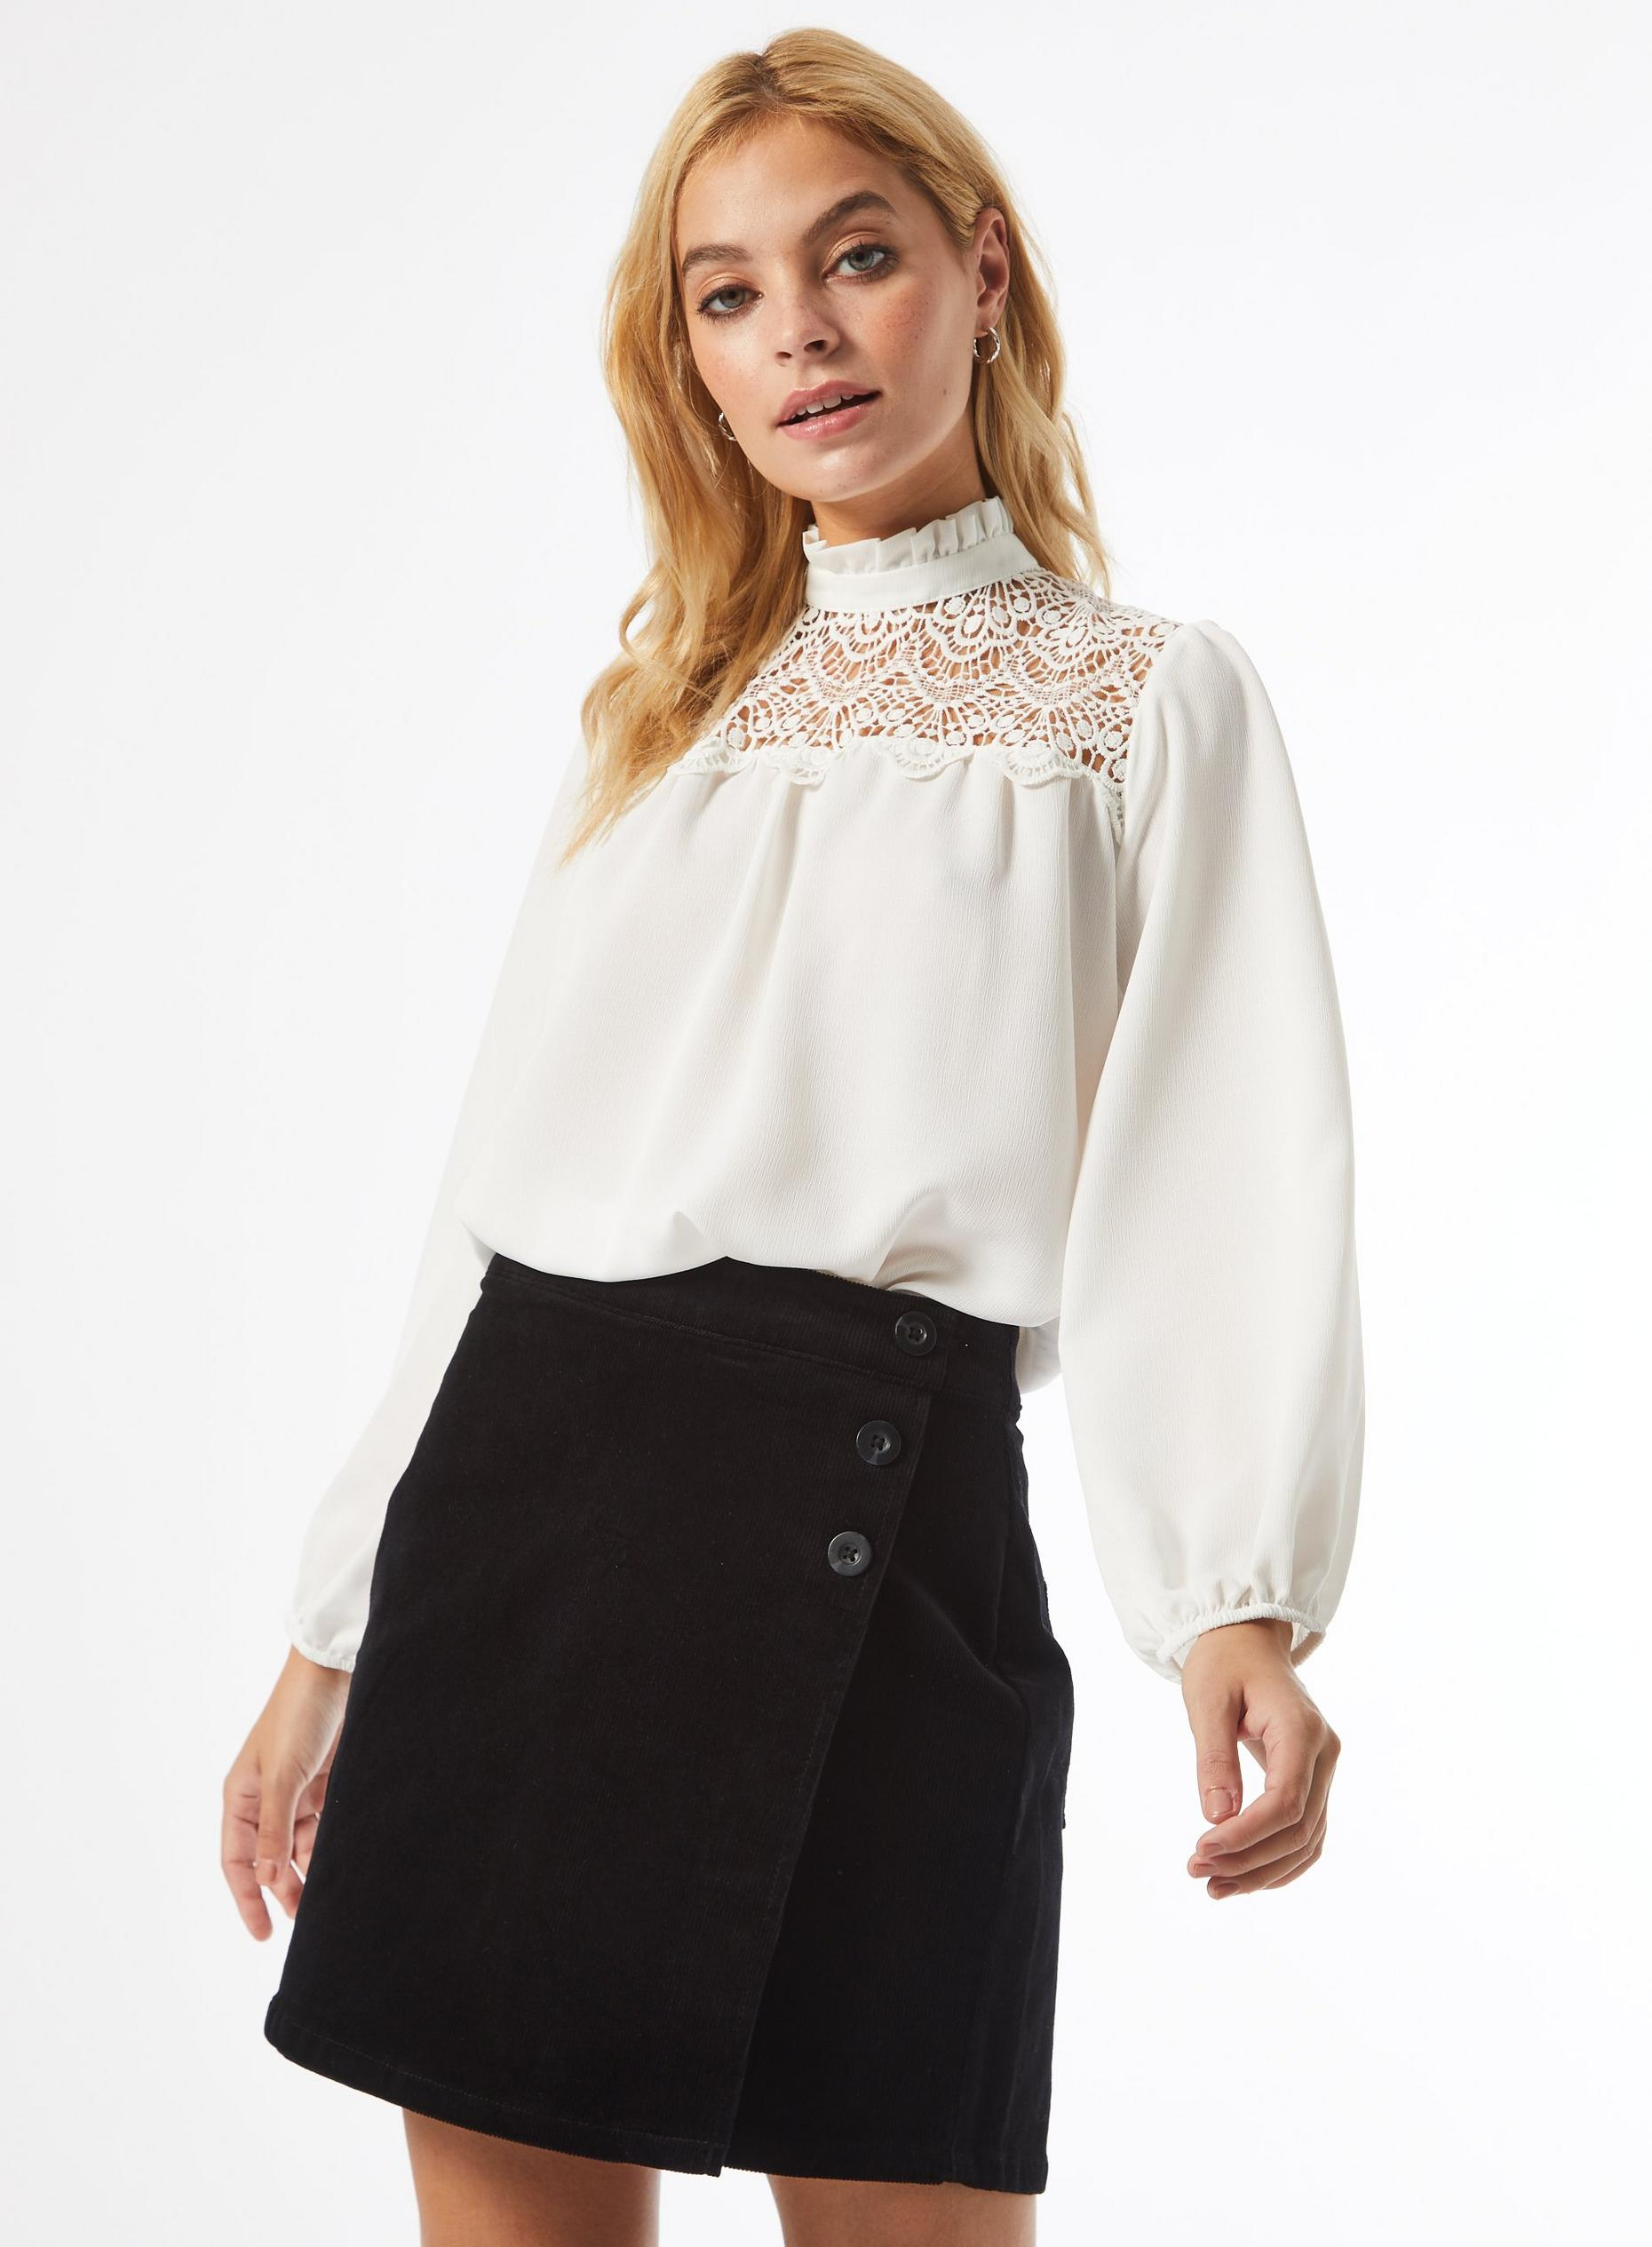 DP Petite Ivory Lace Yoke Top